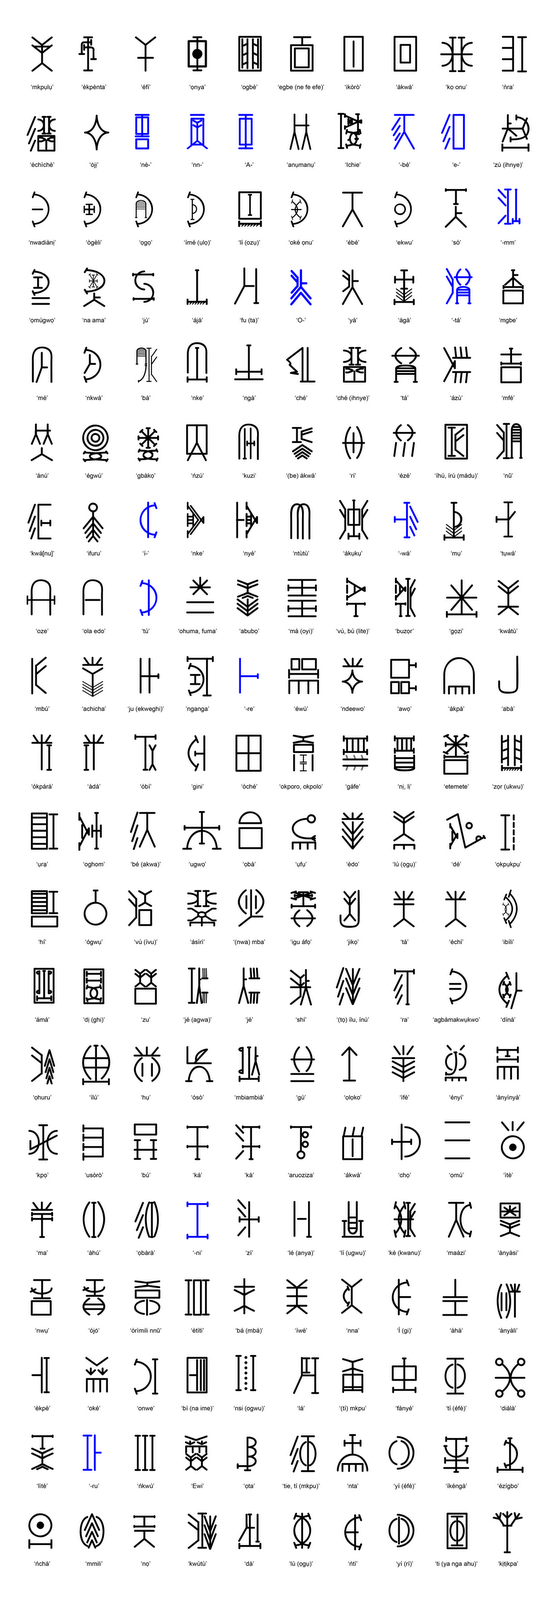 Nsibidi Writing System - Page 3 - SkyscraperCity | sign